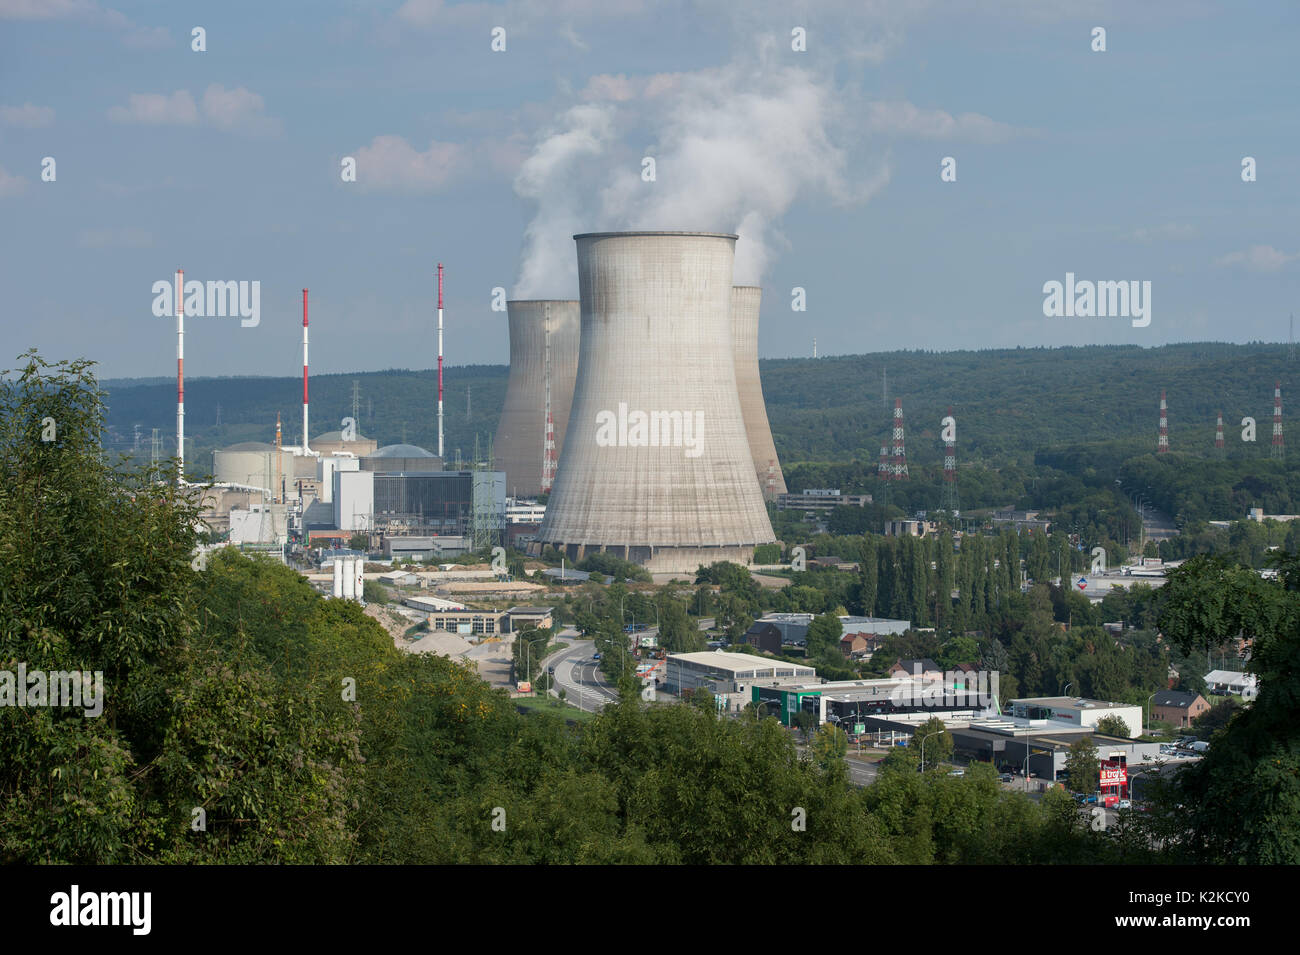 Tihange, Belgium. 28th Aug, 2017. The three cooling towers of the nuclear power plant issuing steam by the Mass river in Tihange, Belgium, 28 August 2017. The power plant is made up of 3 blocks with pressurized water reactors. Iodine tablets will be distributed for free in the Aachen region starting 01 September. The tablets are supposed to protect the population from thyroid cancer in the case of a reactor accident in the Belgian town of Tihange. Photo: Rainer Jensen/dpa/Alamy Live News - Stock Image